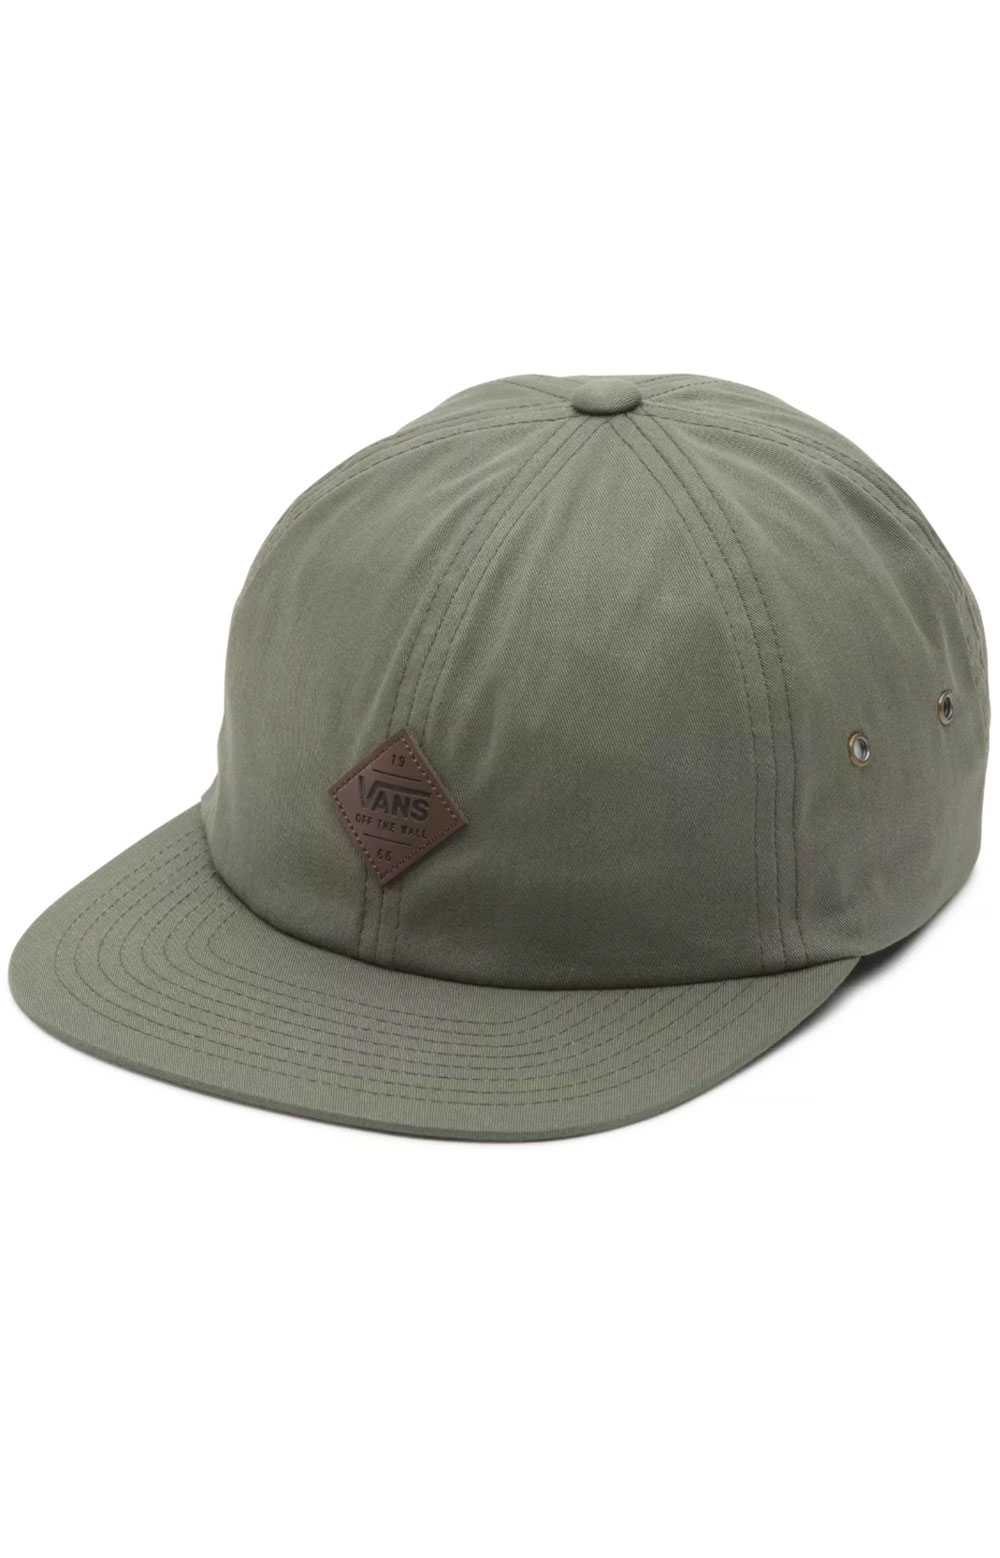 Nesbitt Jockey Strap-Back Hat - Grape Leaf